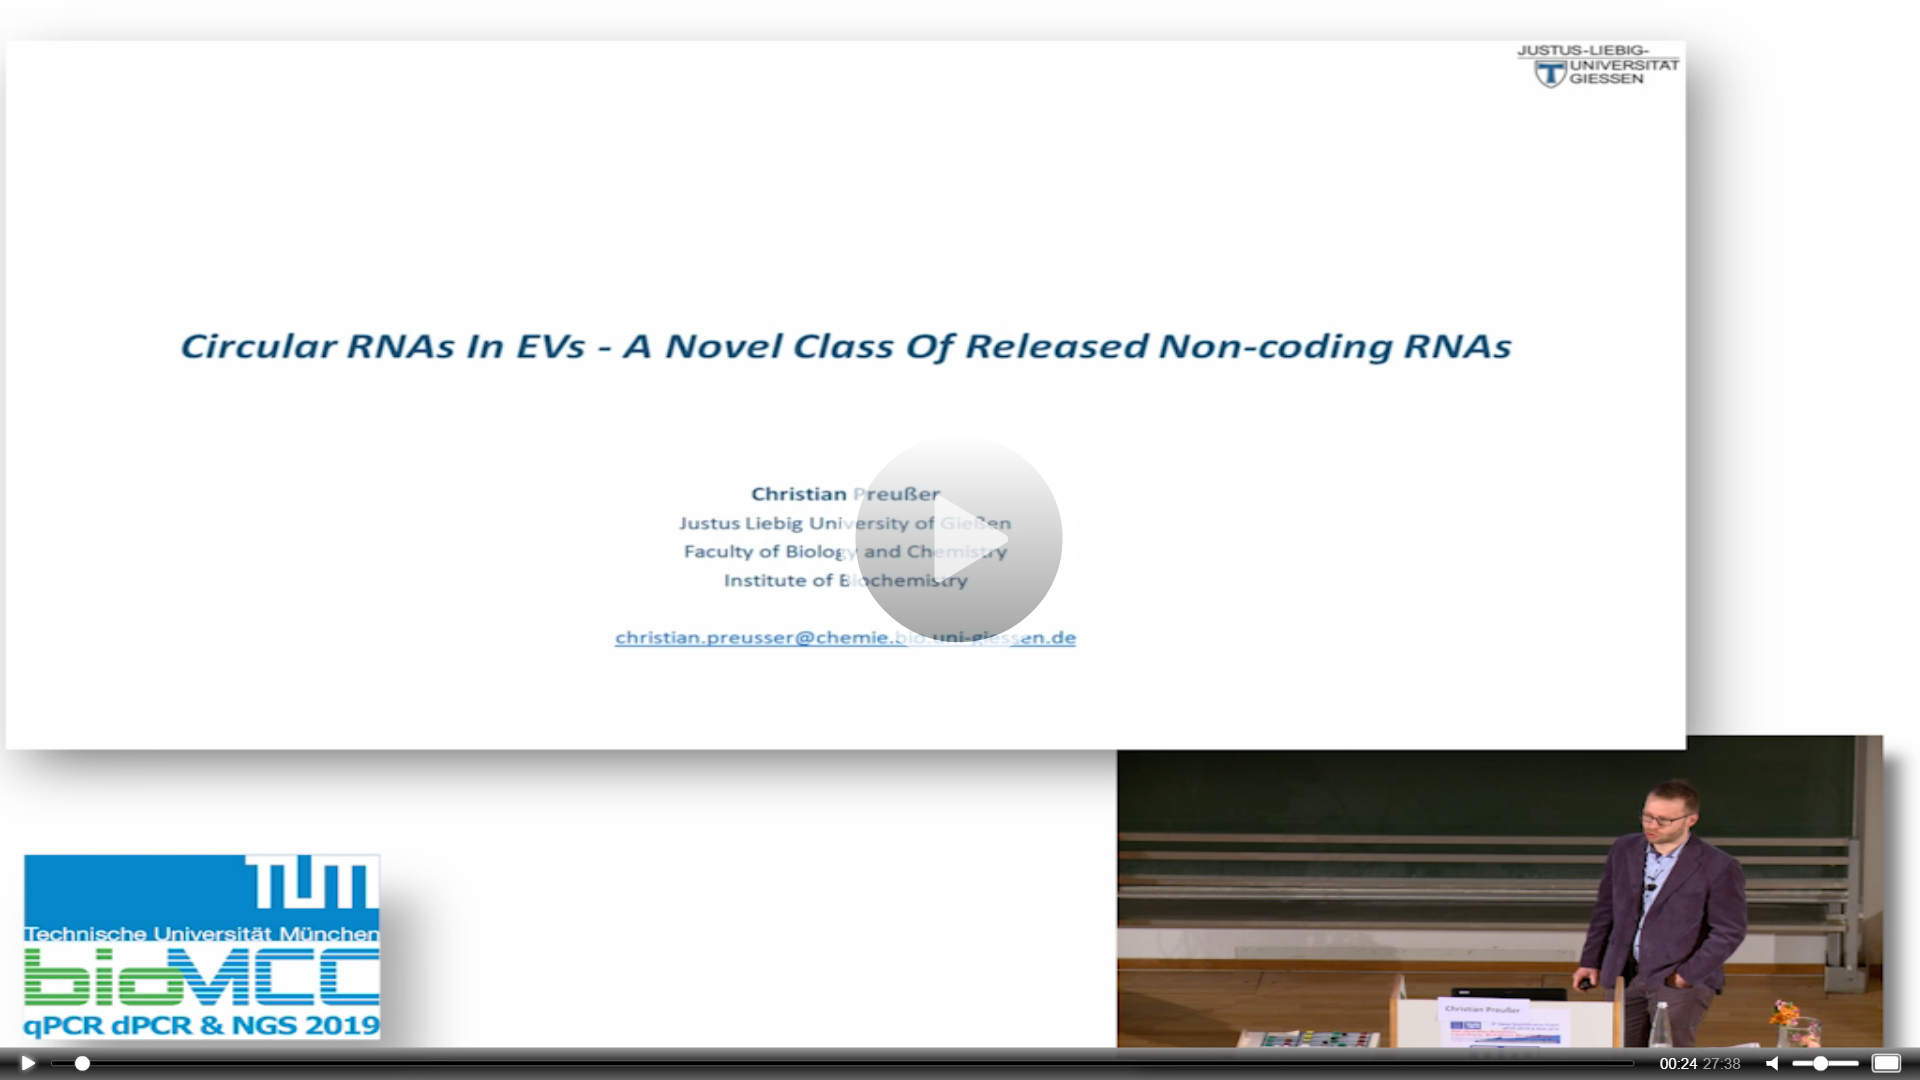 Circular RNAs In EVs - A Novel Class Of Released Non-coding RNAs